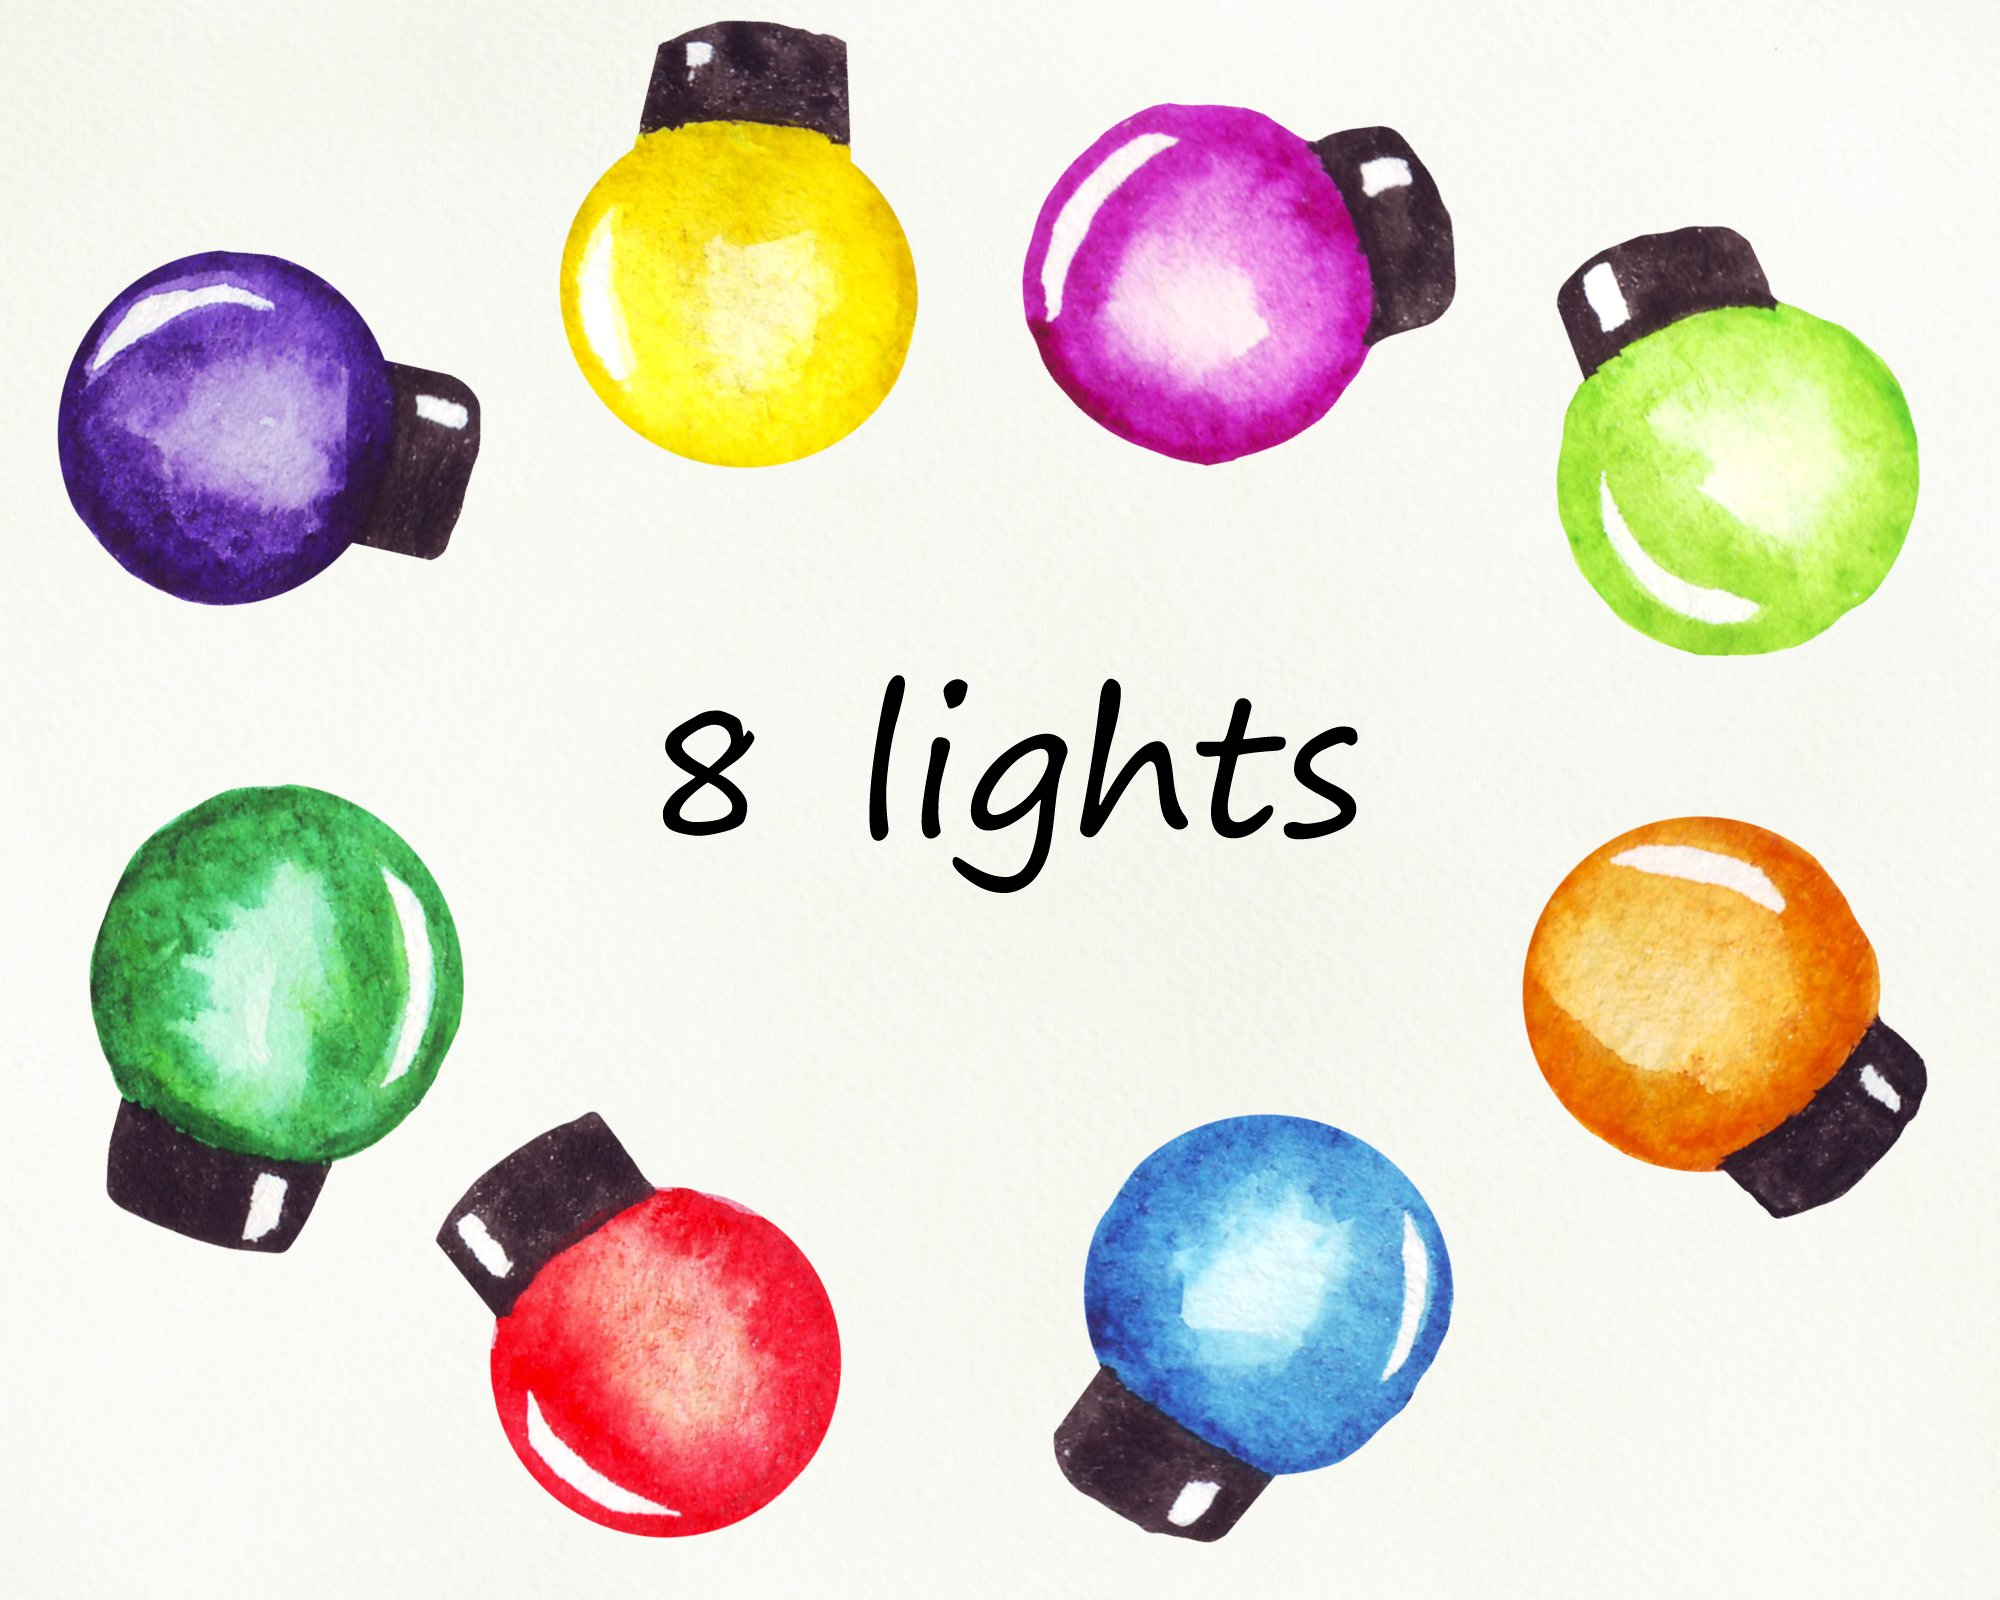 String of Christmas lights clipart, border, frame png example image 3